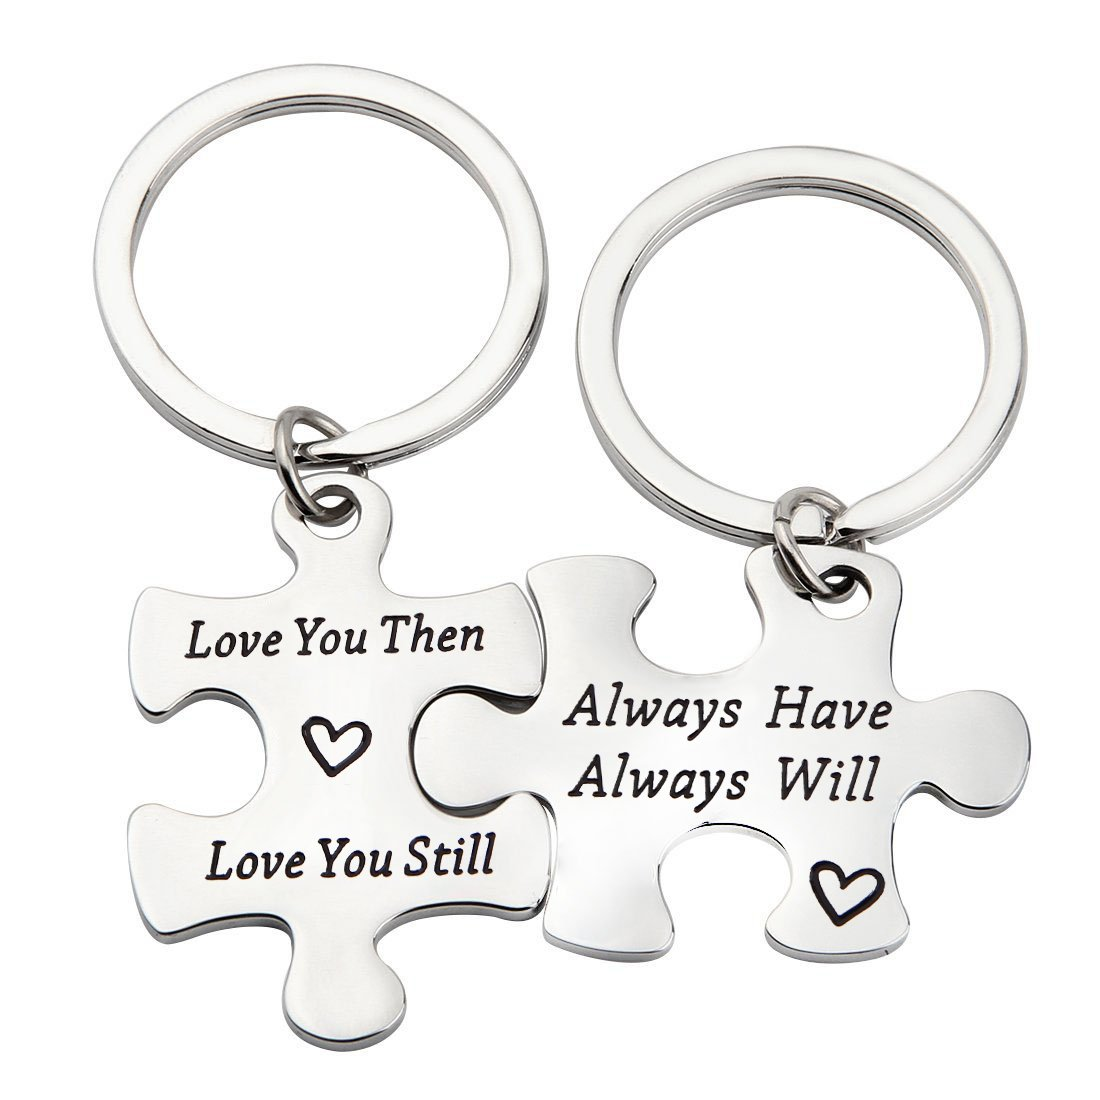 MAOFAED Puzzle Couple Keychain Love You Then Love You Still Gift For Her or Him (Love You Then CP Keychain)